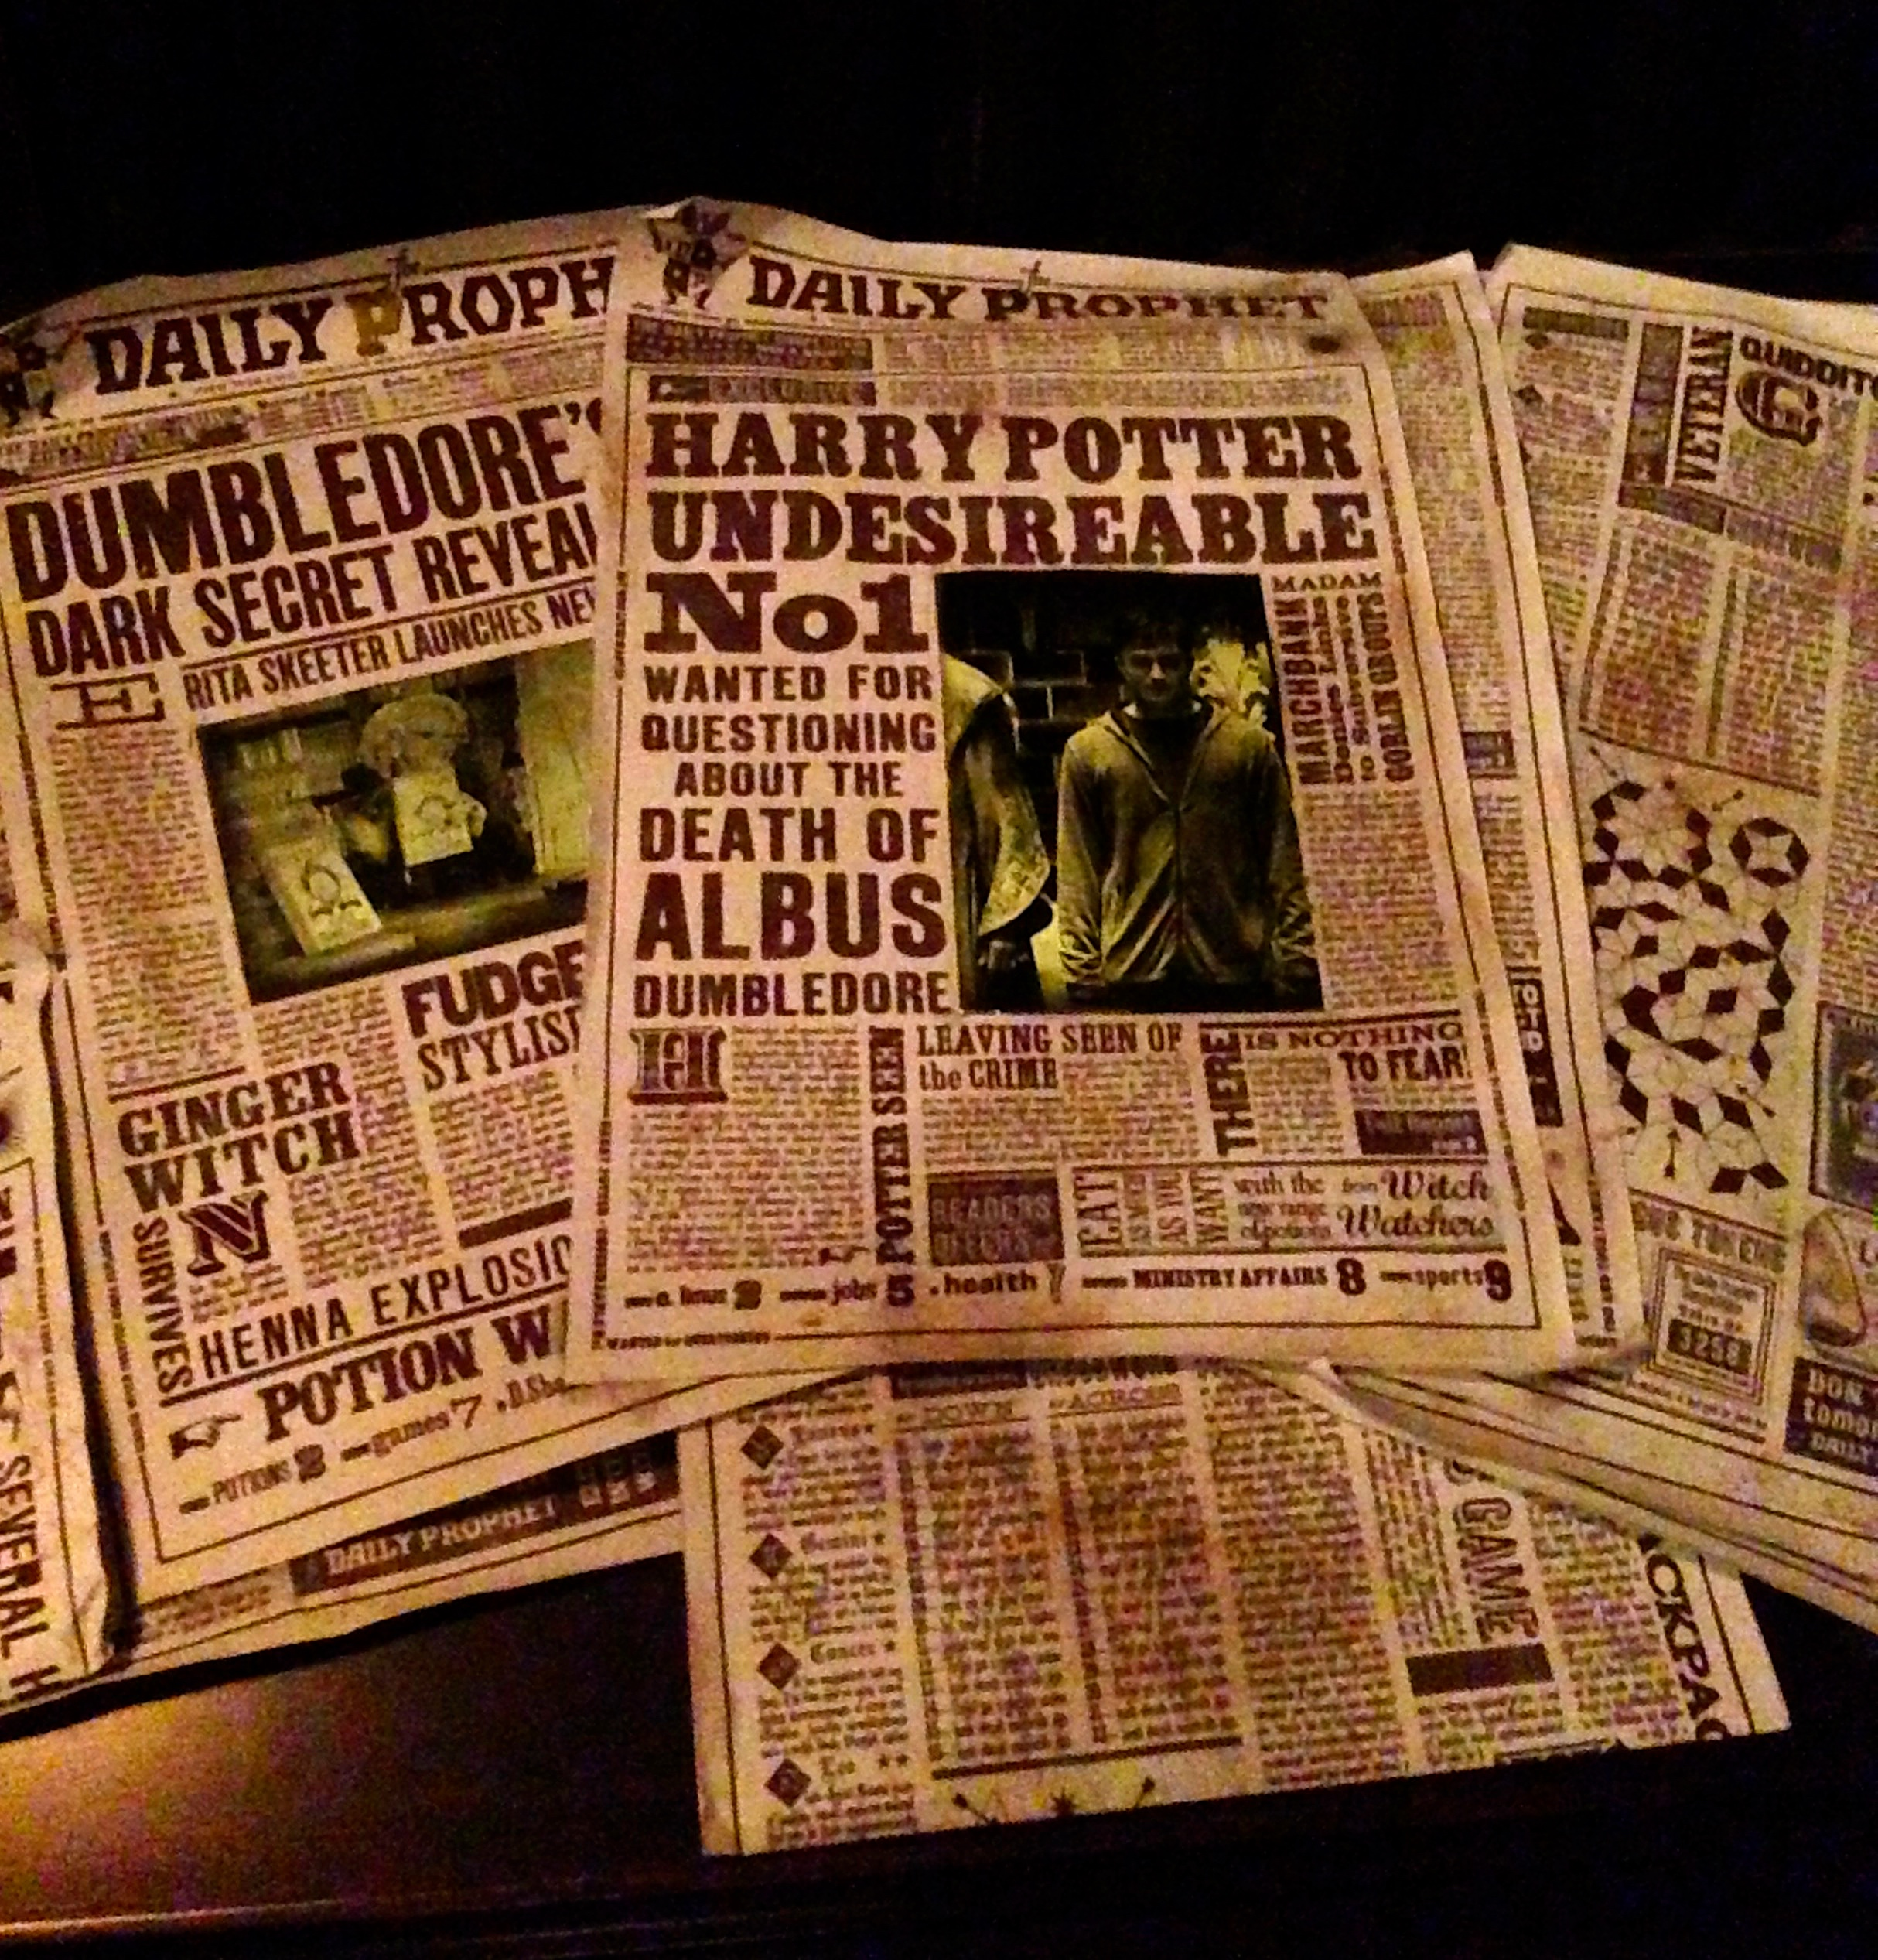 Harry Potter Newspapers